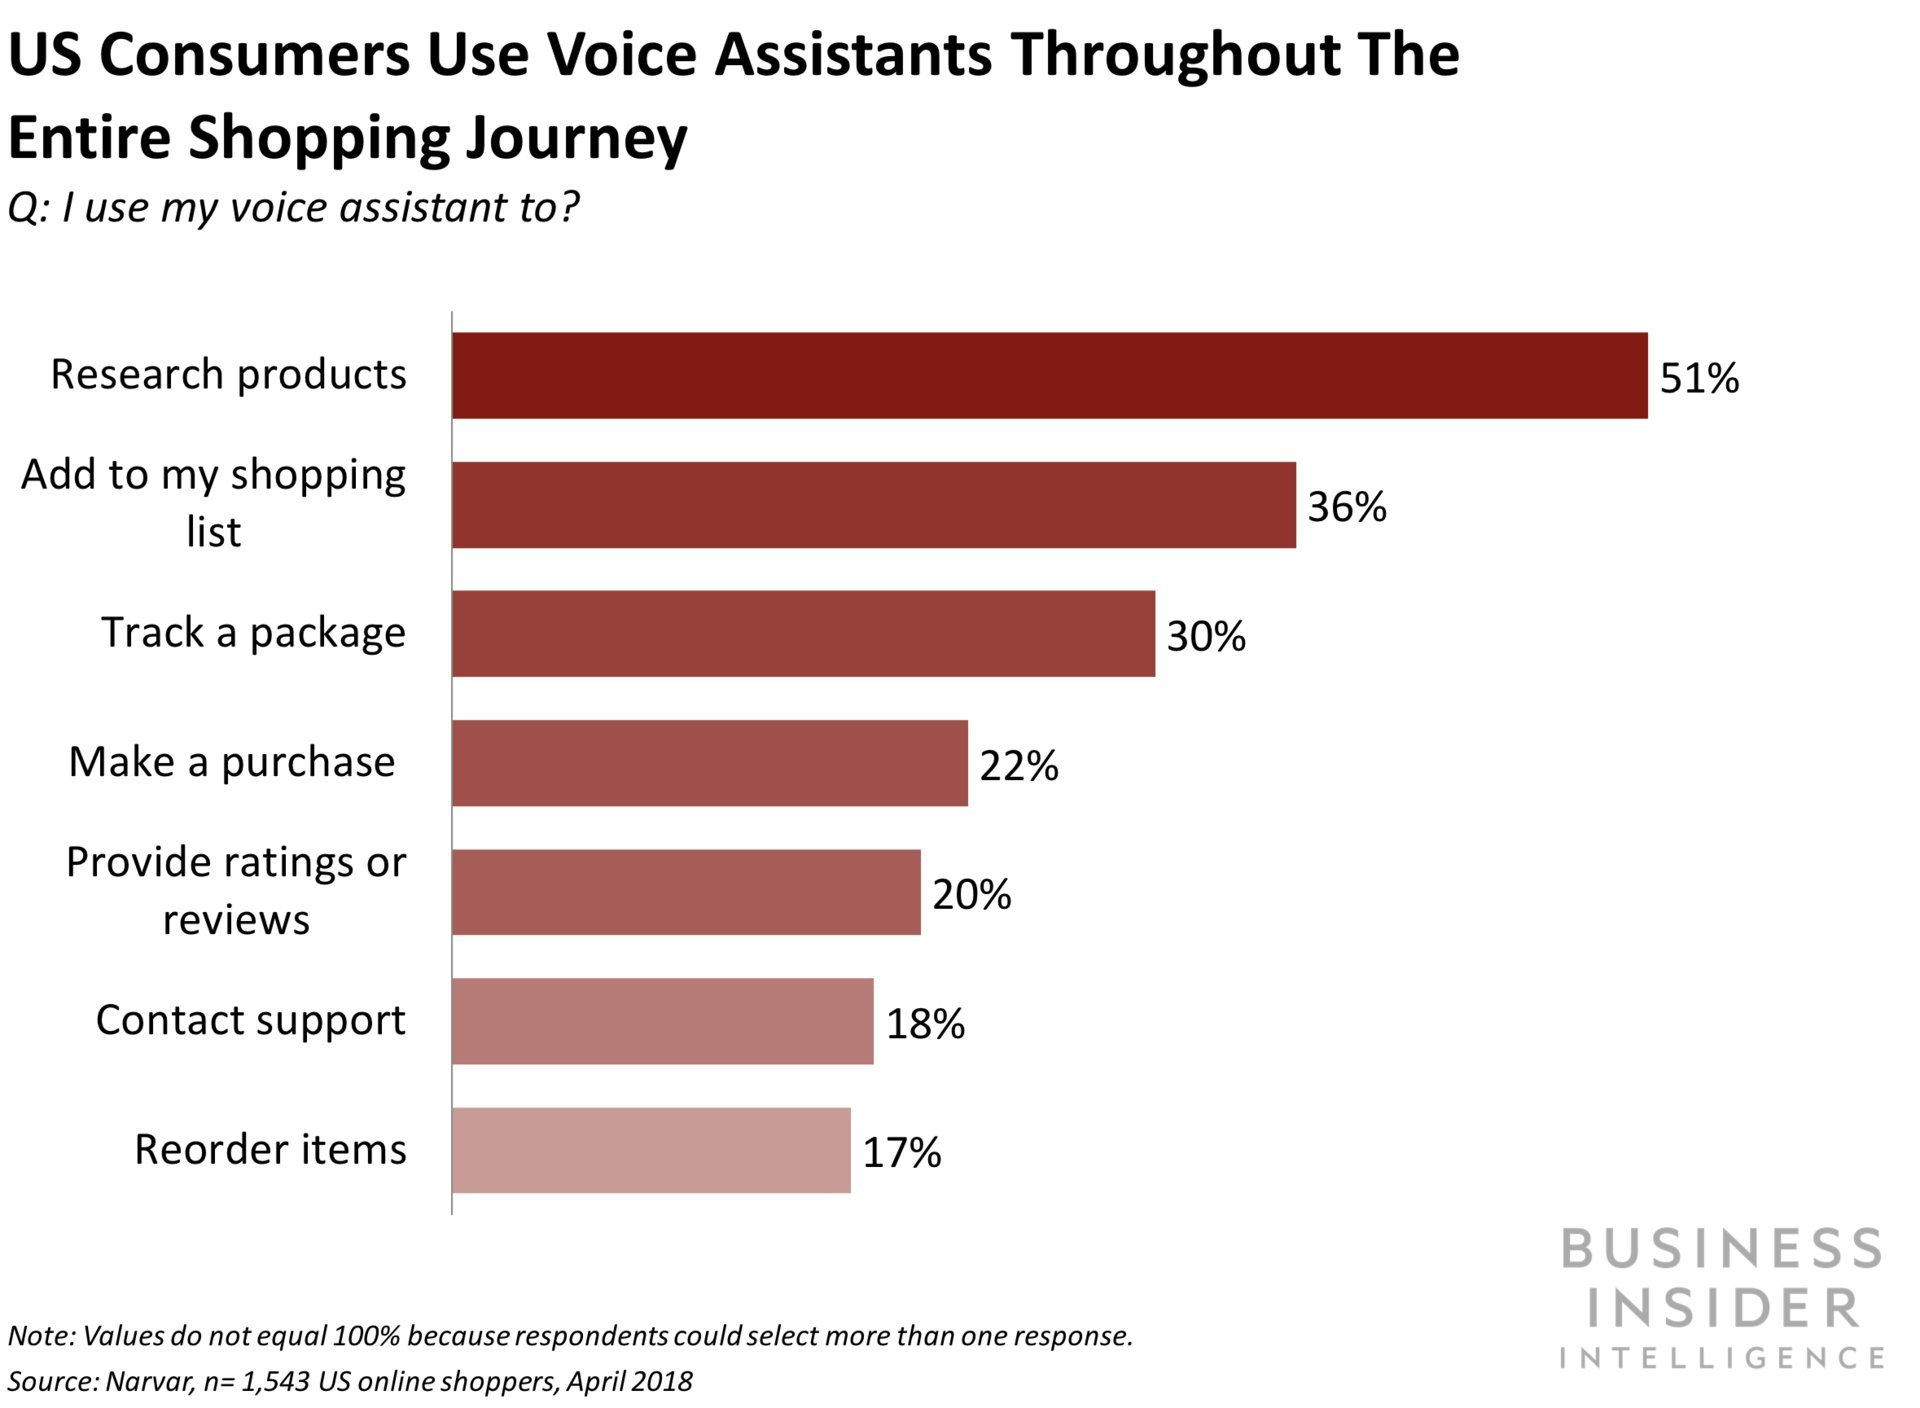 US Consumers Use Voice Assistants Throughout the Entire Shopping Journey